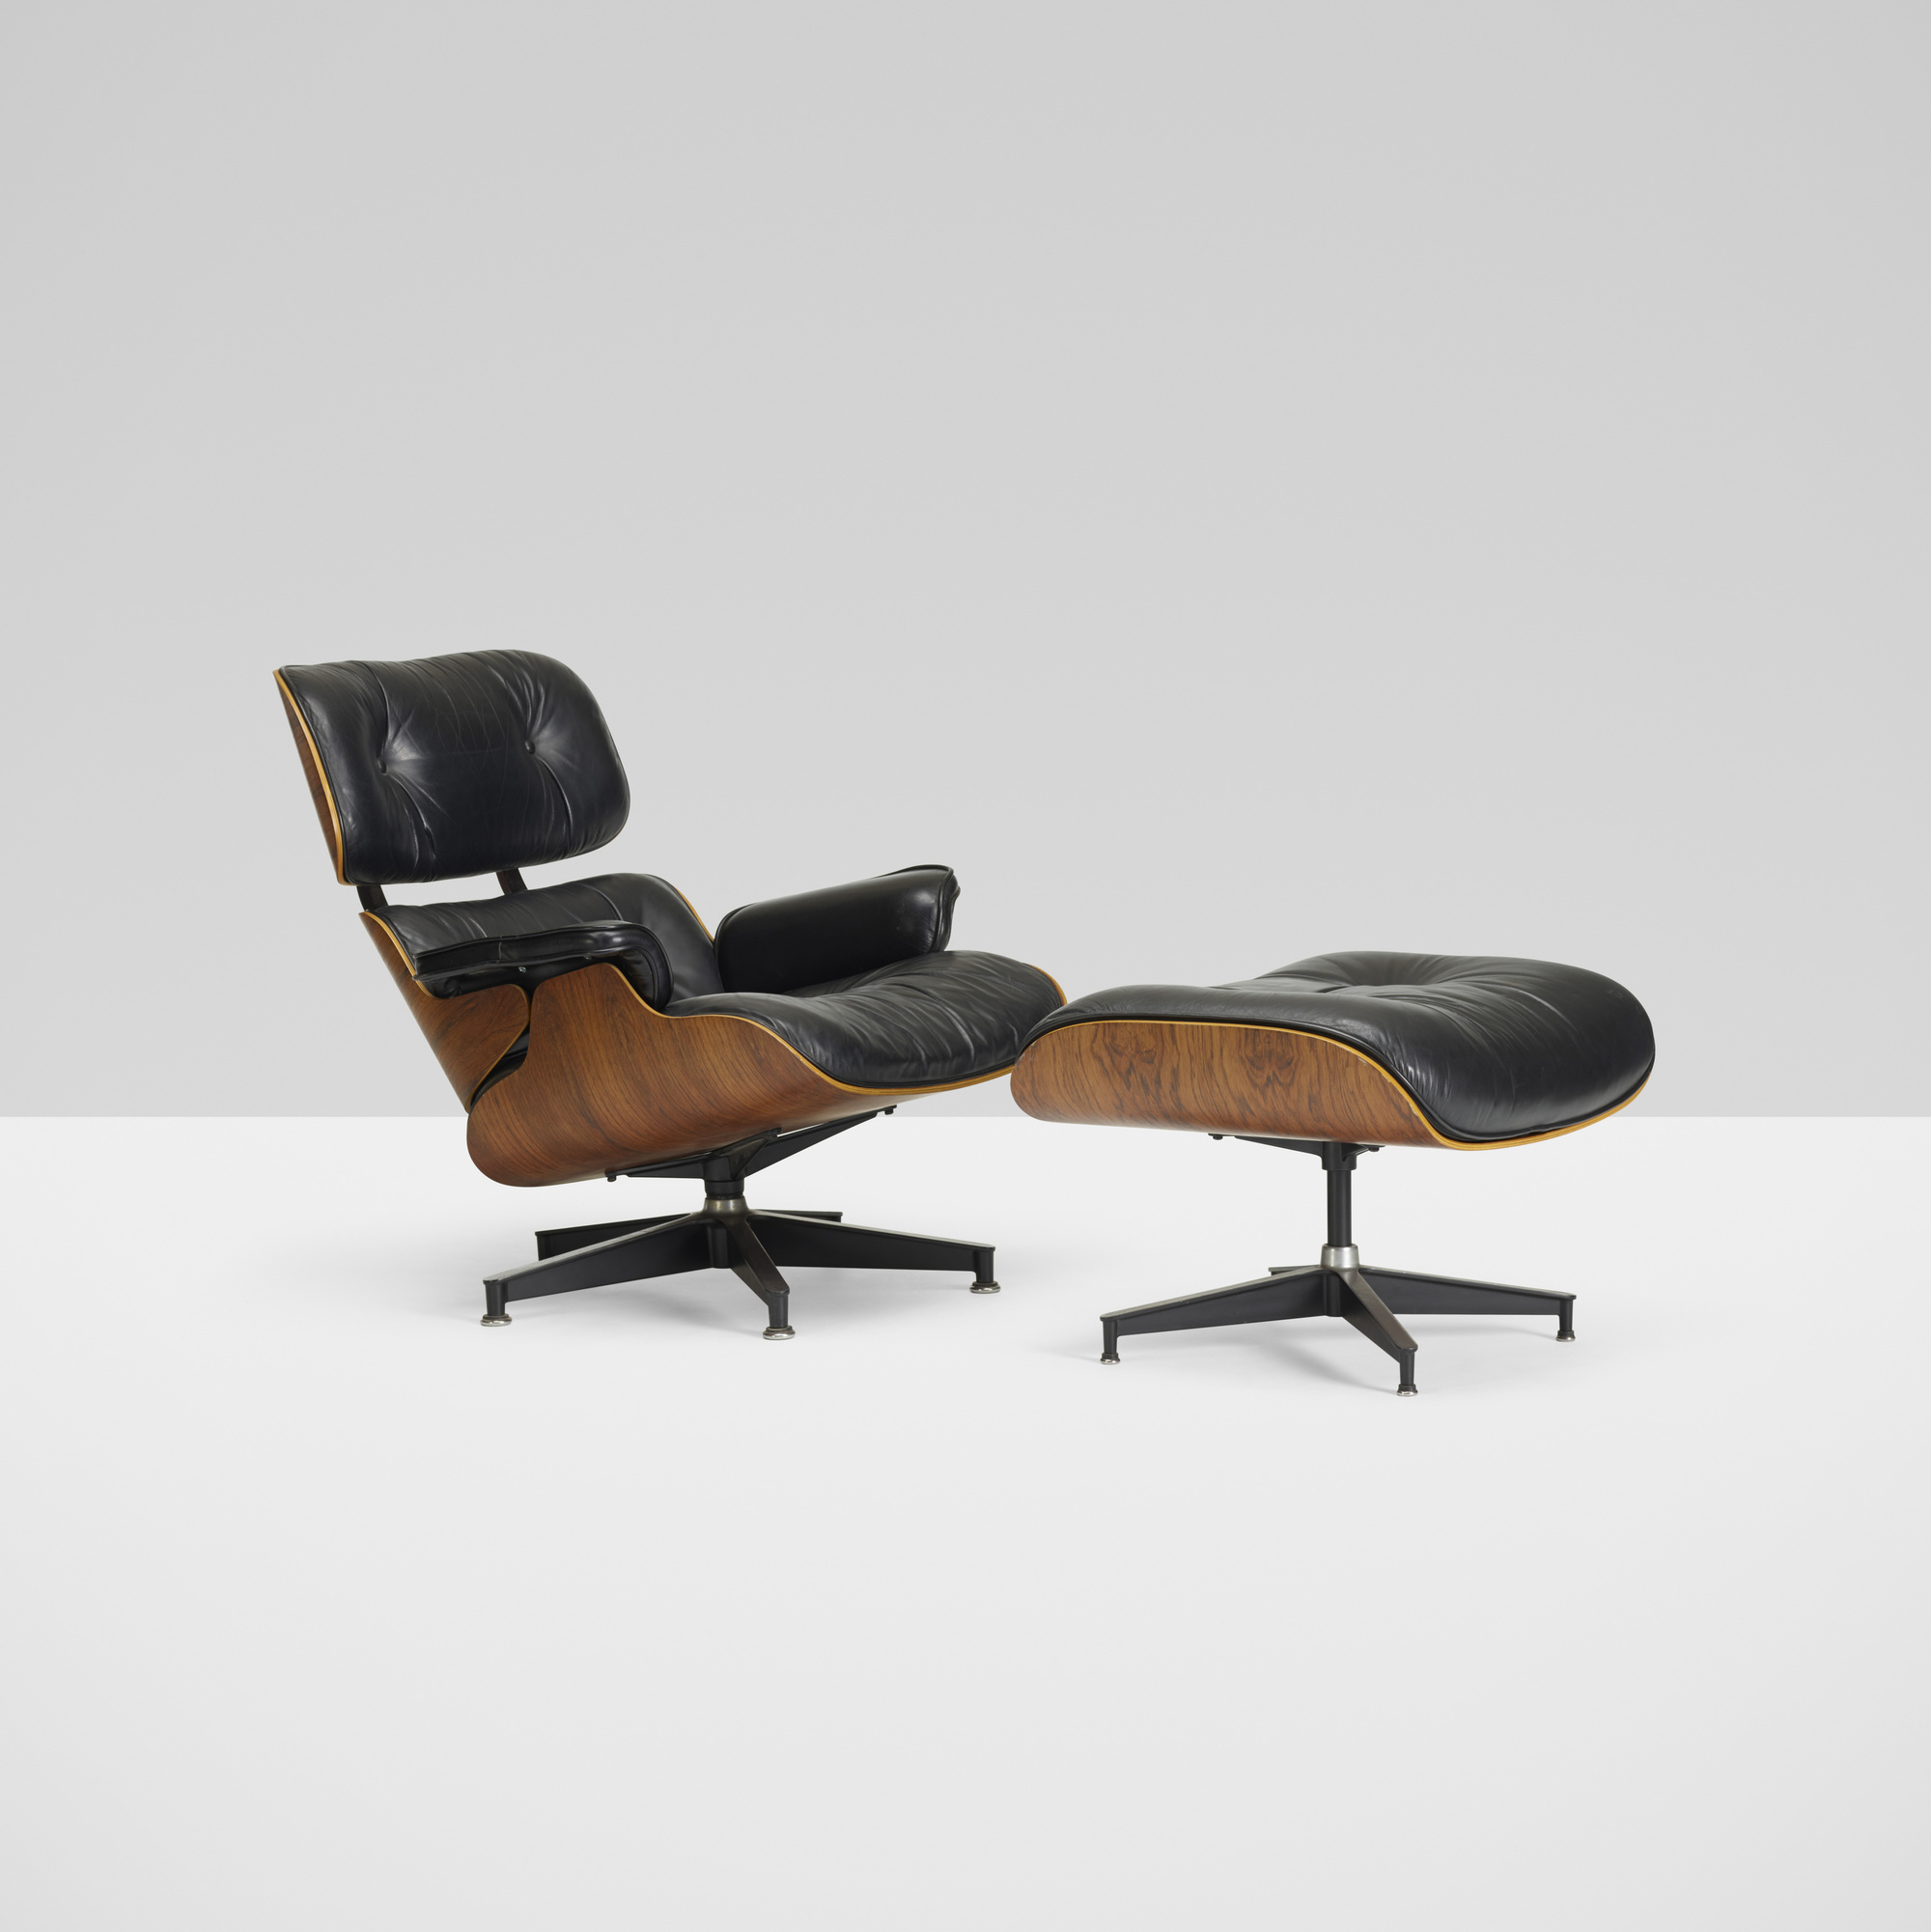 137 Charles and Ray Eames lounge chair model 670 and ottoman